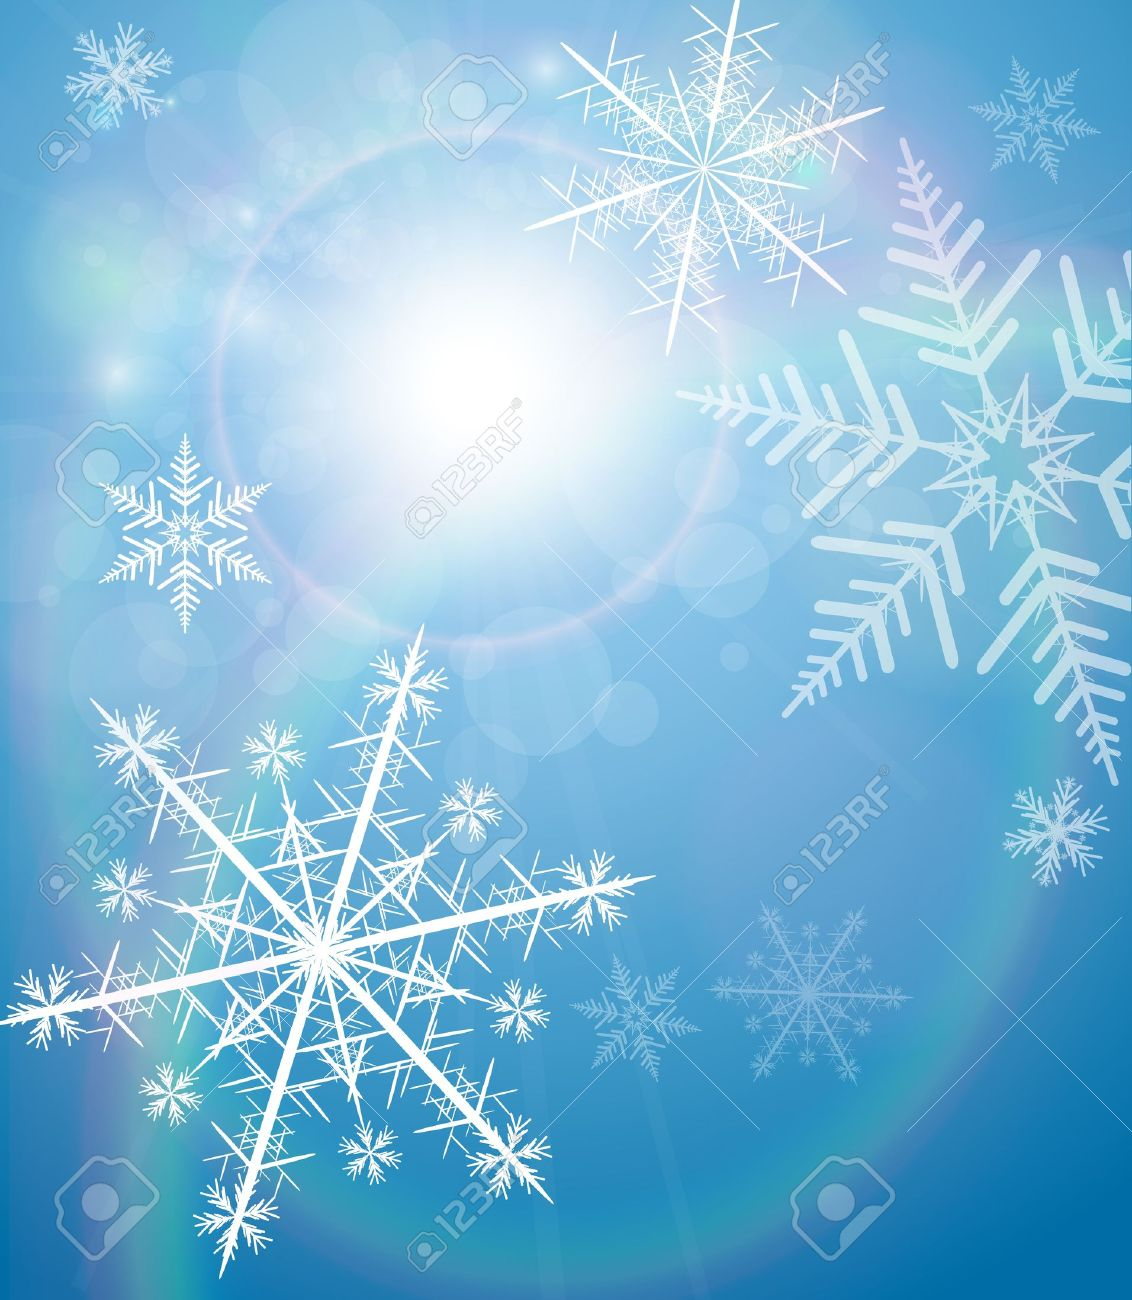 Winter background with snowflakes - 14945019